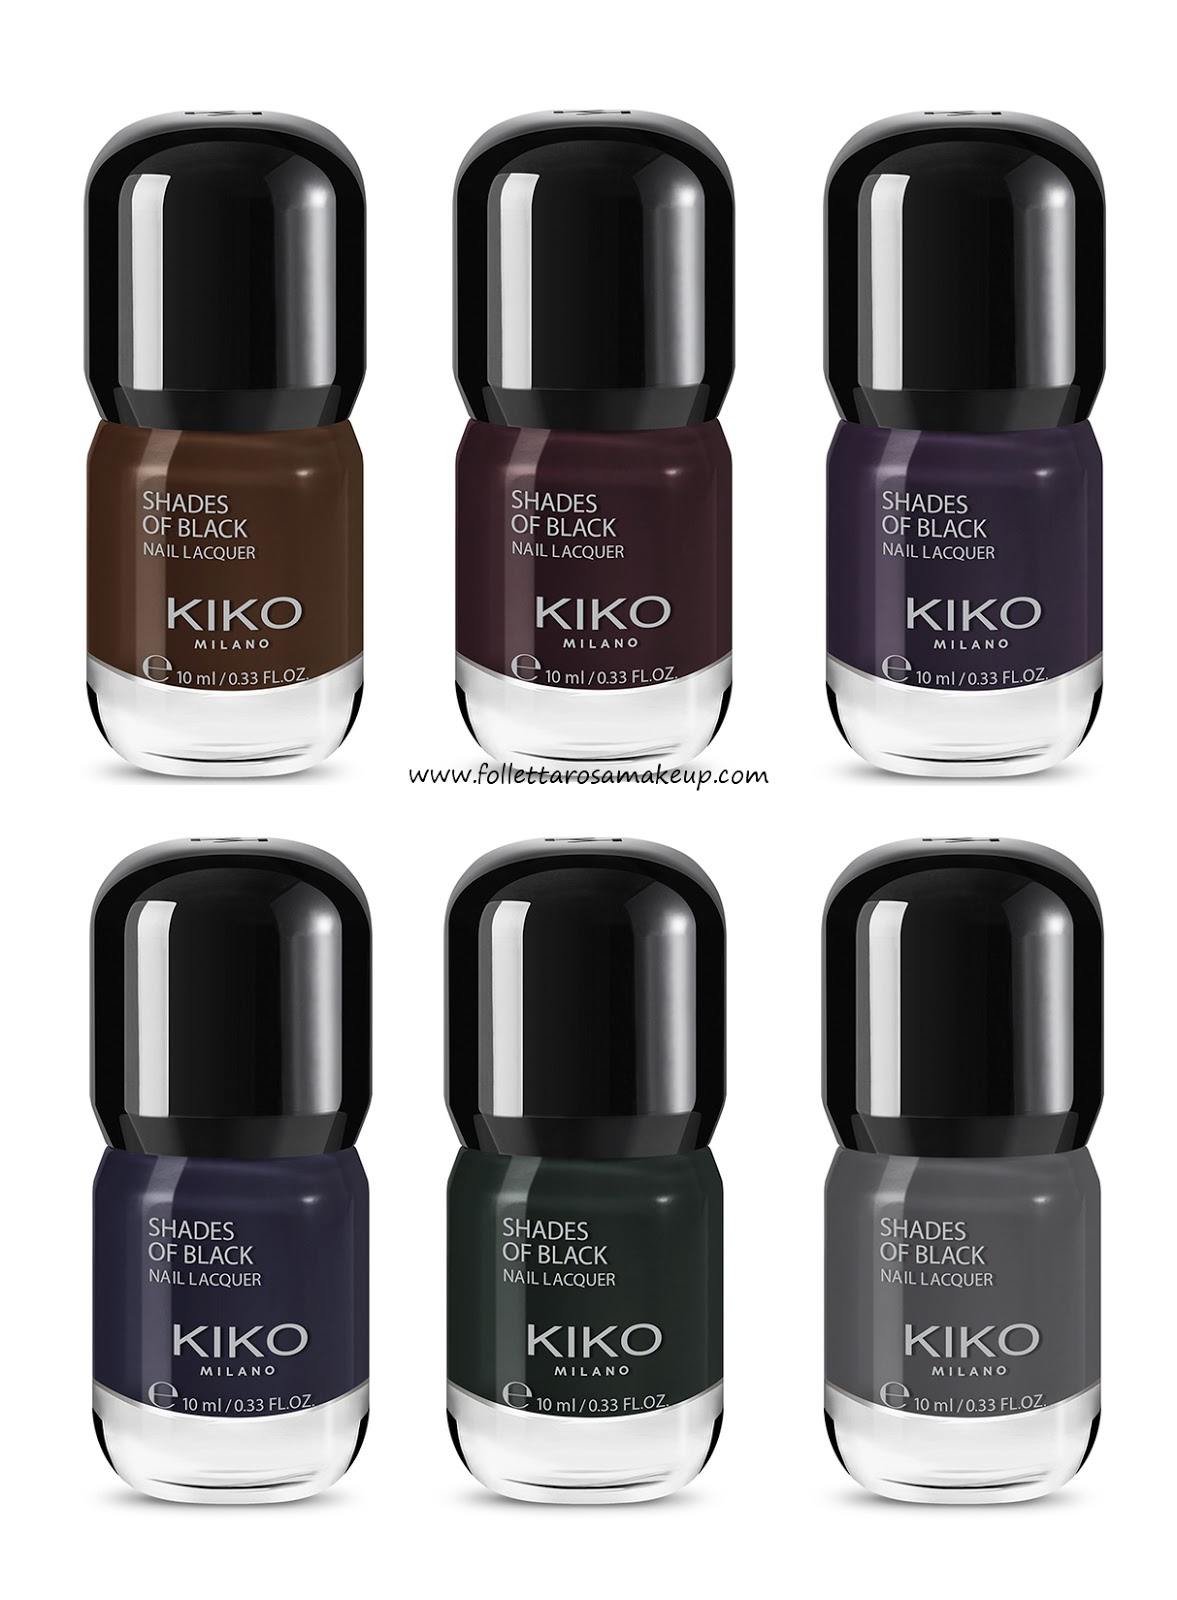 kiko-shades-of-black